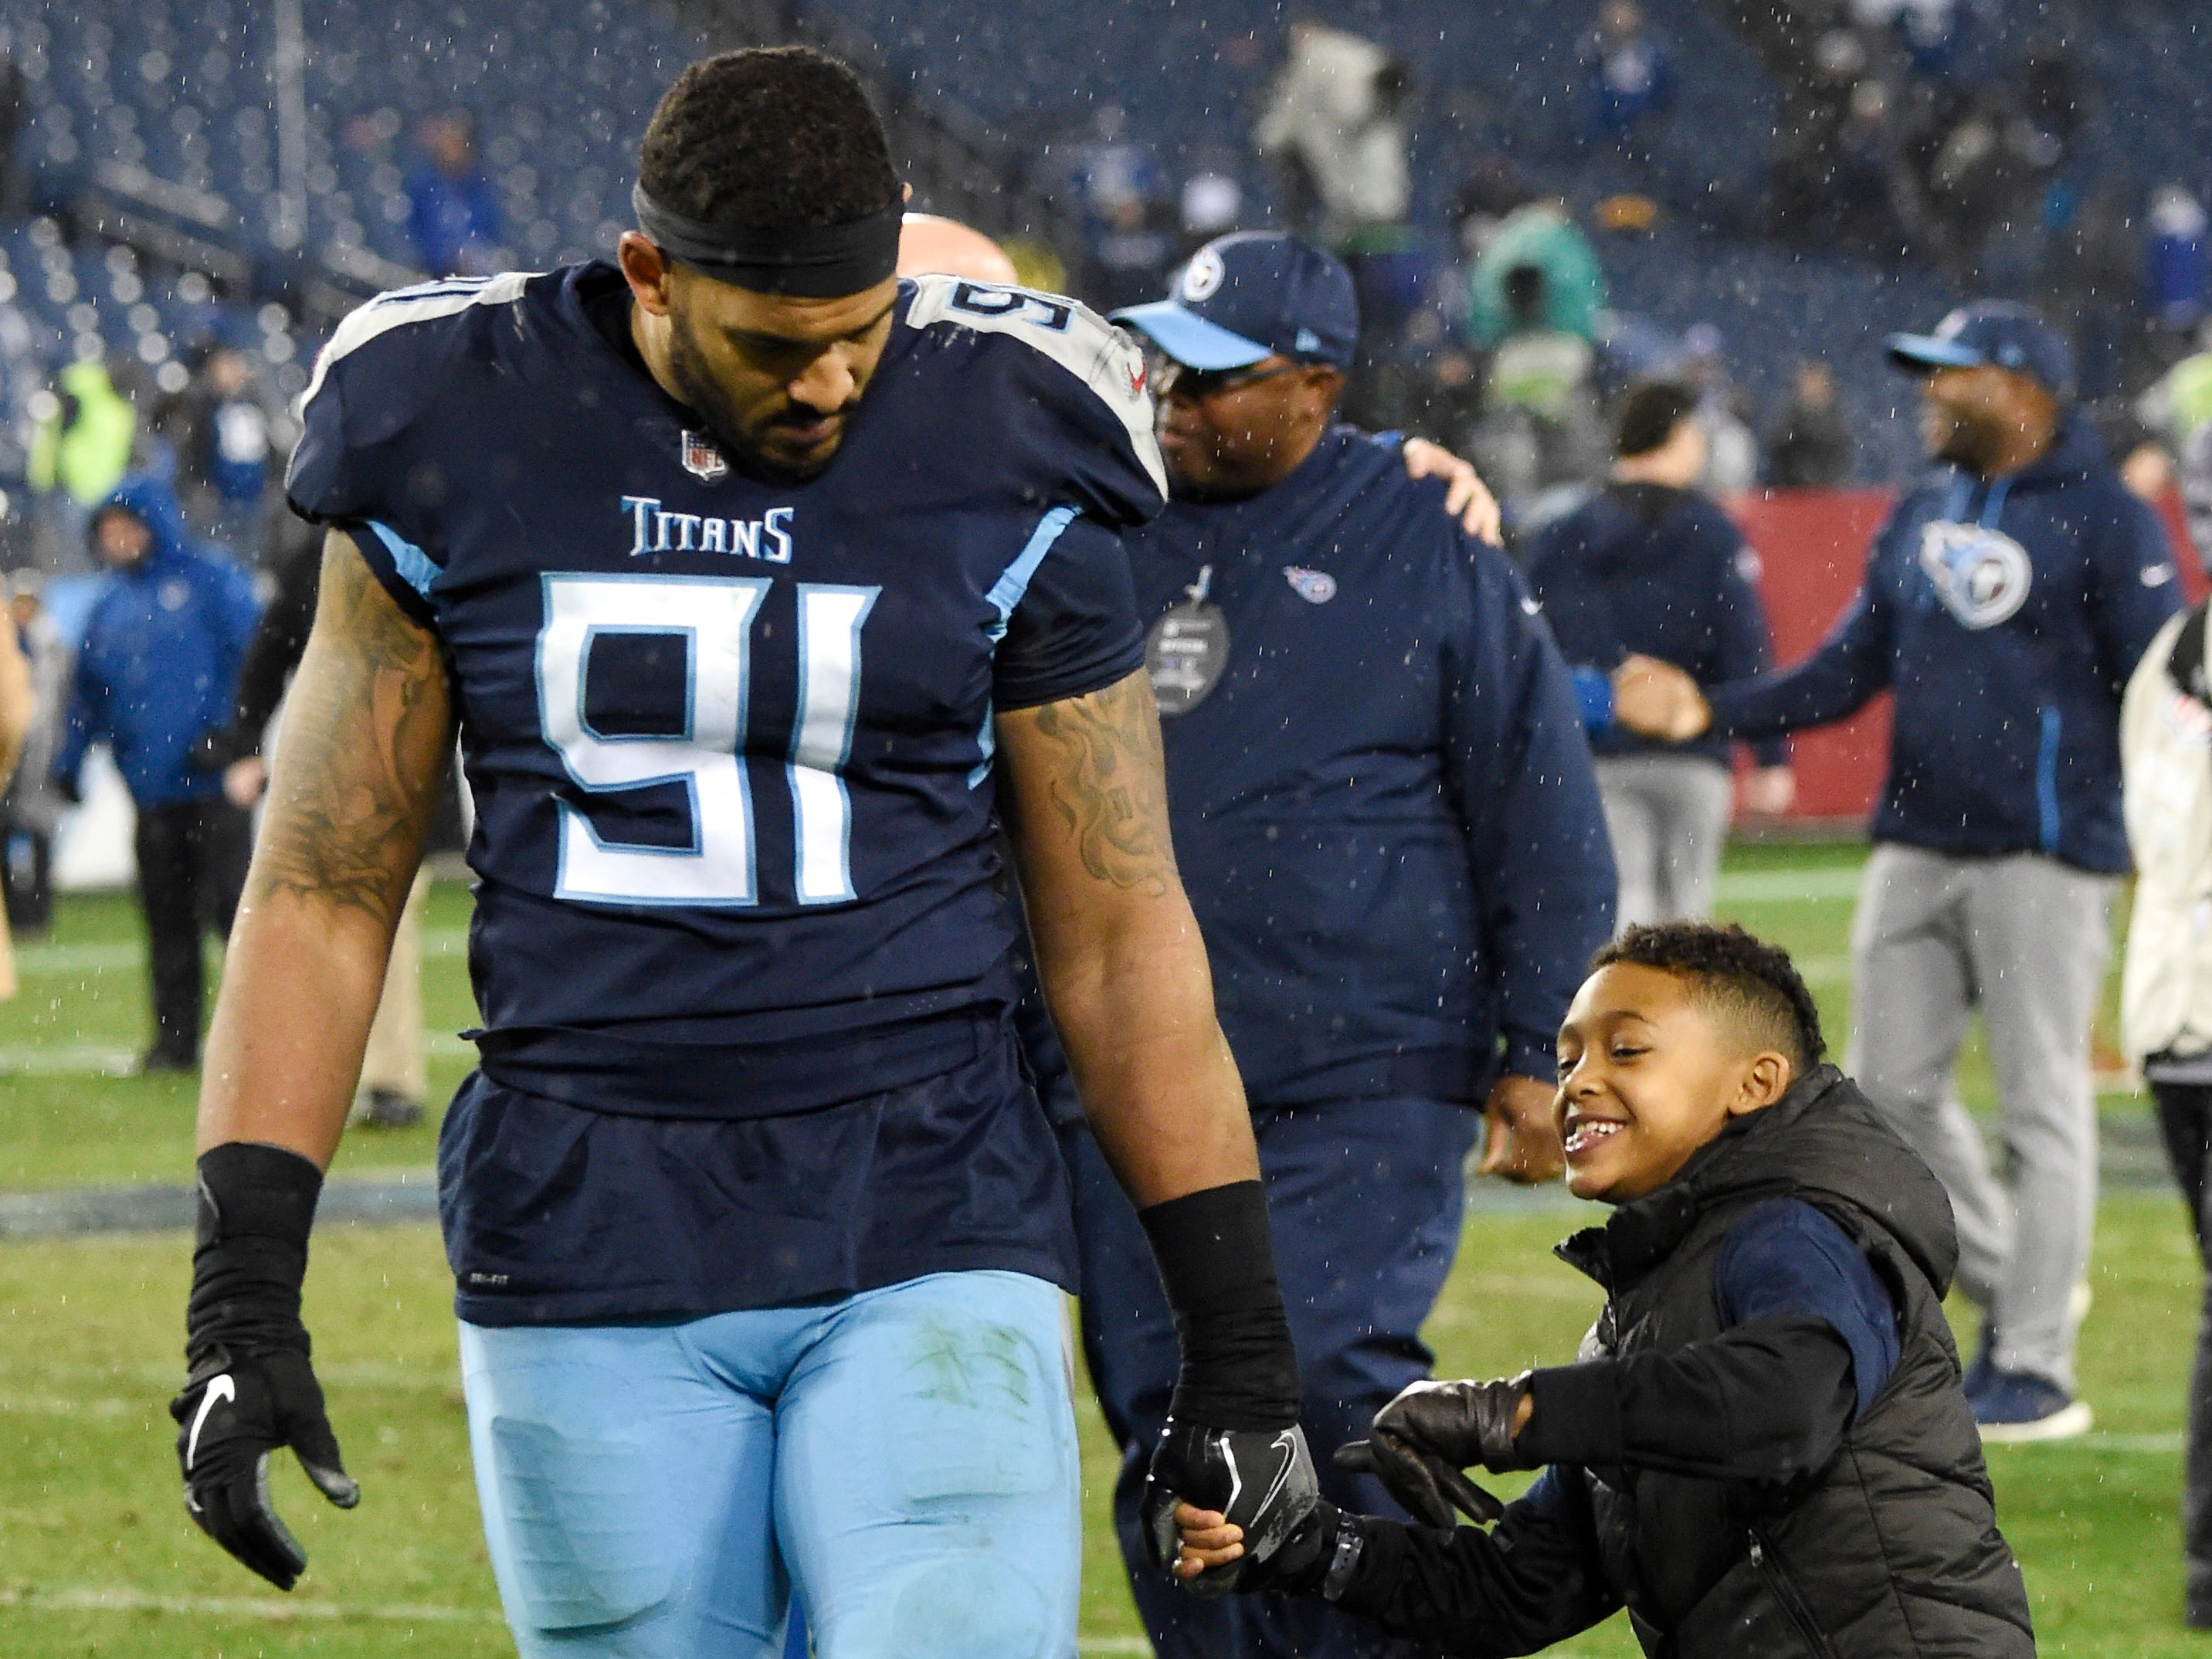 Titans linebacker Derrick Morgan (91) walks off the field with his son Elias after the team's 33-17 loss to the Colts at Nissan Stadium Sunday, Dec. 30, 2018, in Nashville, Tenn.